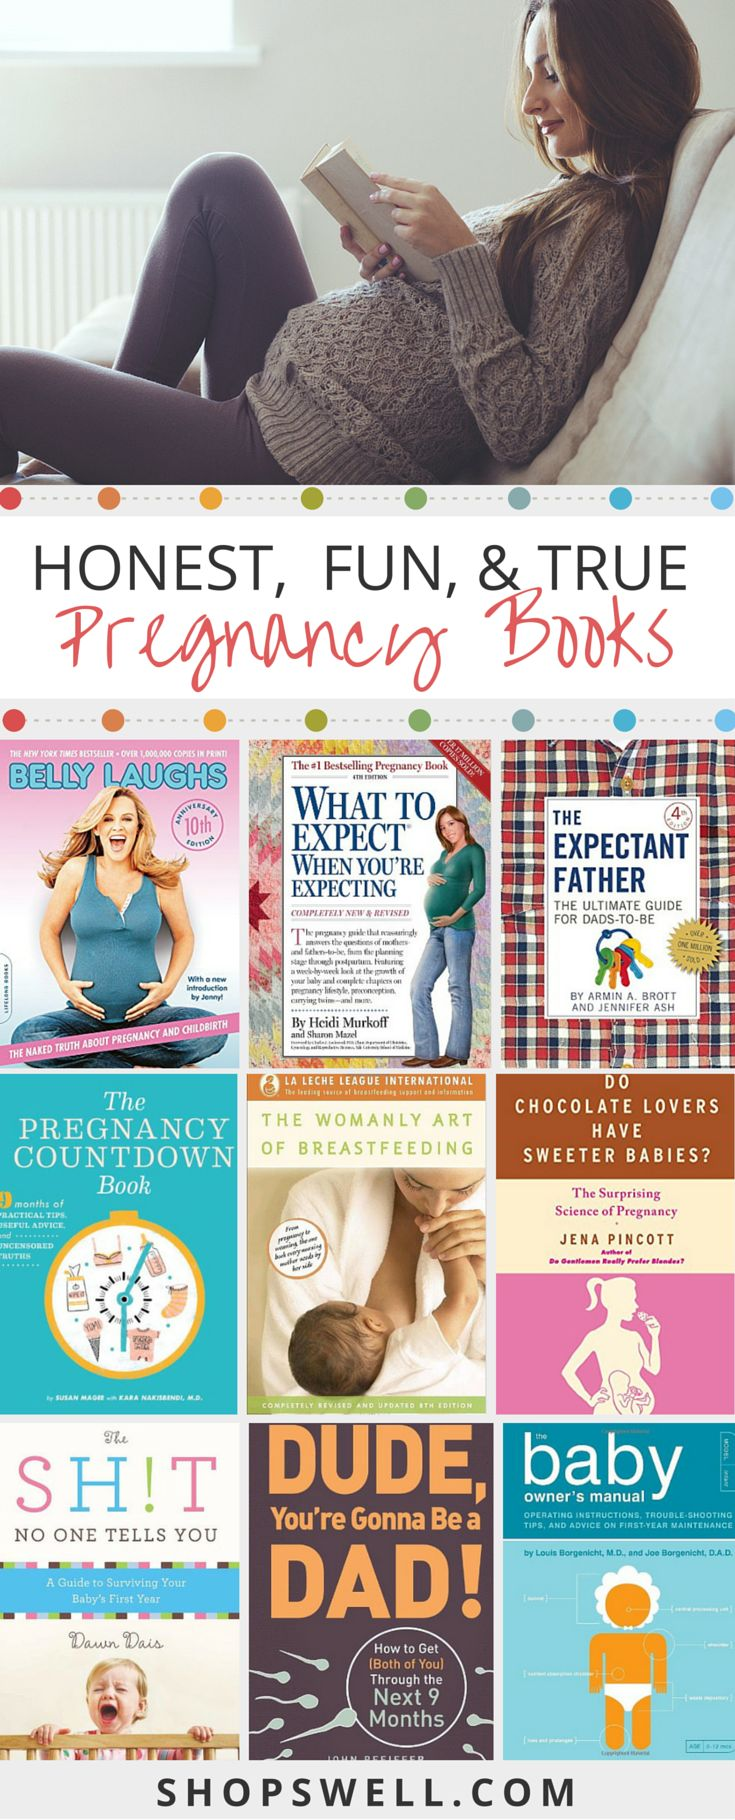 15 pregnancy books with real world advice for the first time mom and dad.